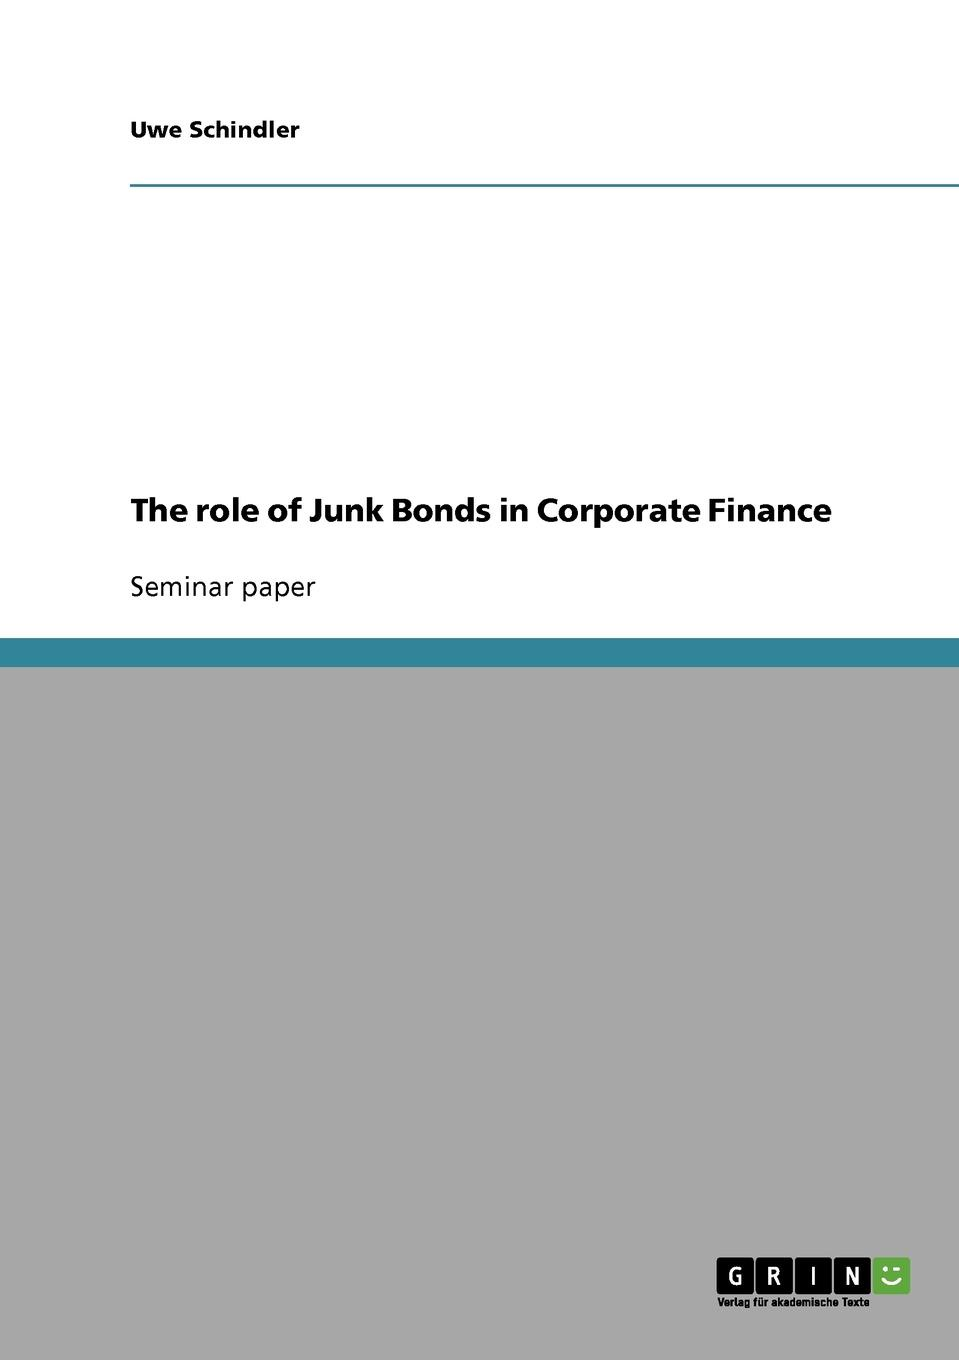 Uwe Schindler The role of Junk Bonds in Corporate Finance kirt butler c multinational finance evaluating opportunities costs and risks of operations